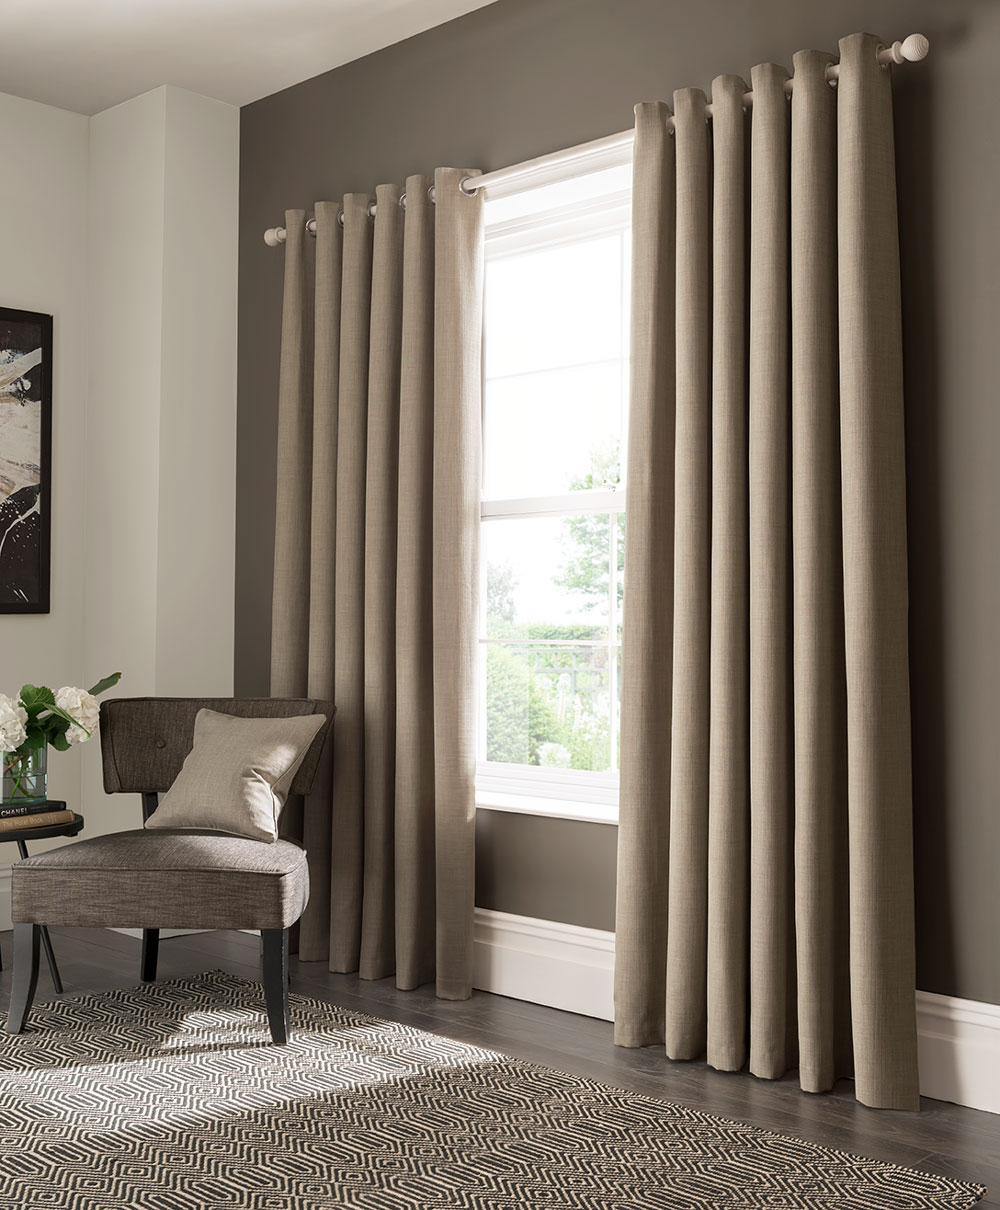 Elba Eyelet Curtains Ready Made Curtains - Linen - by Studio G